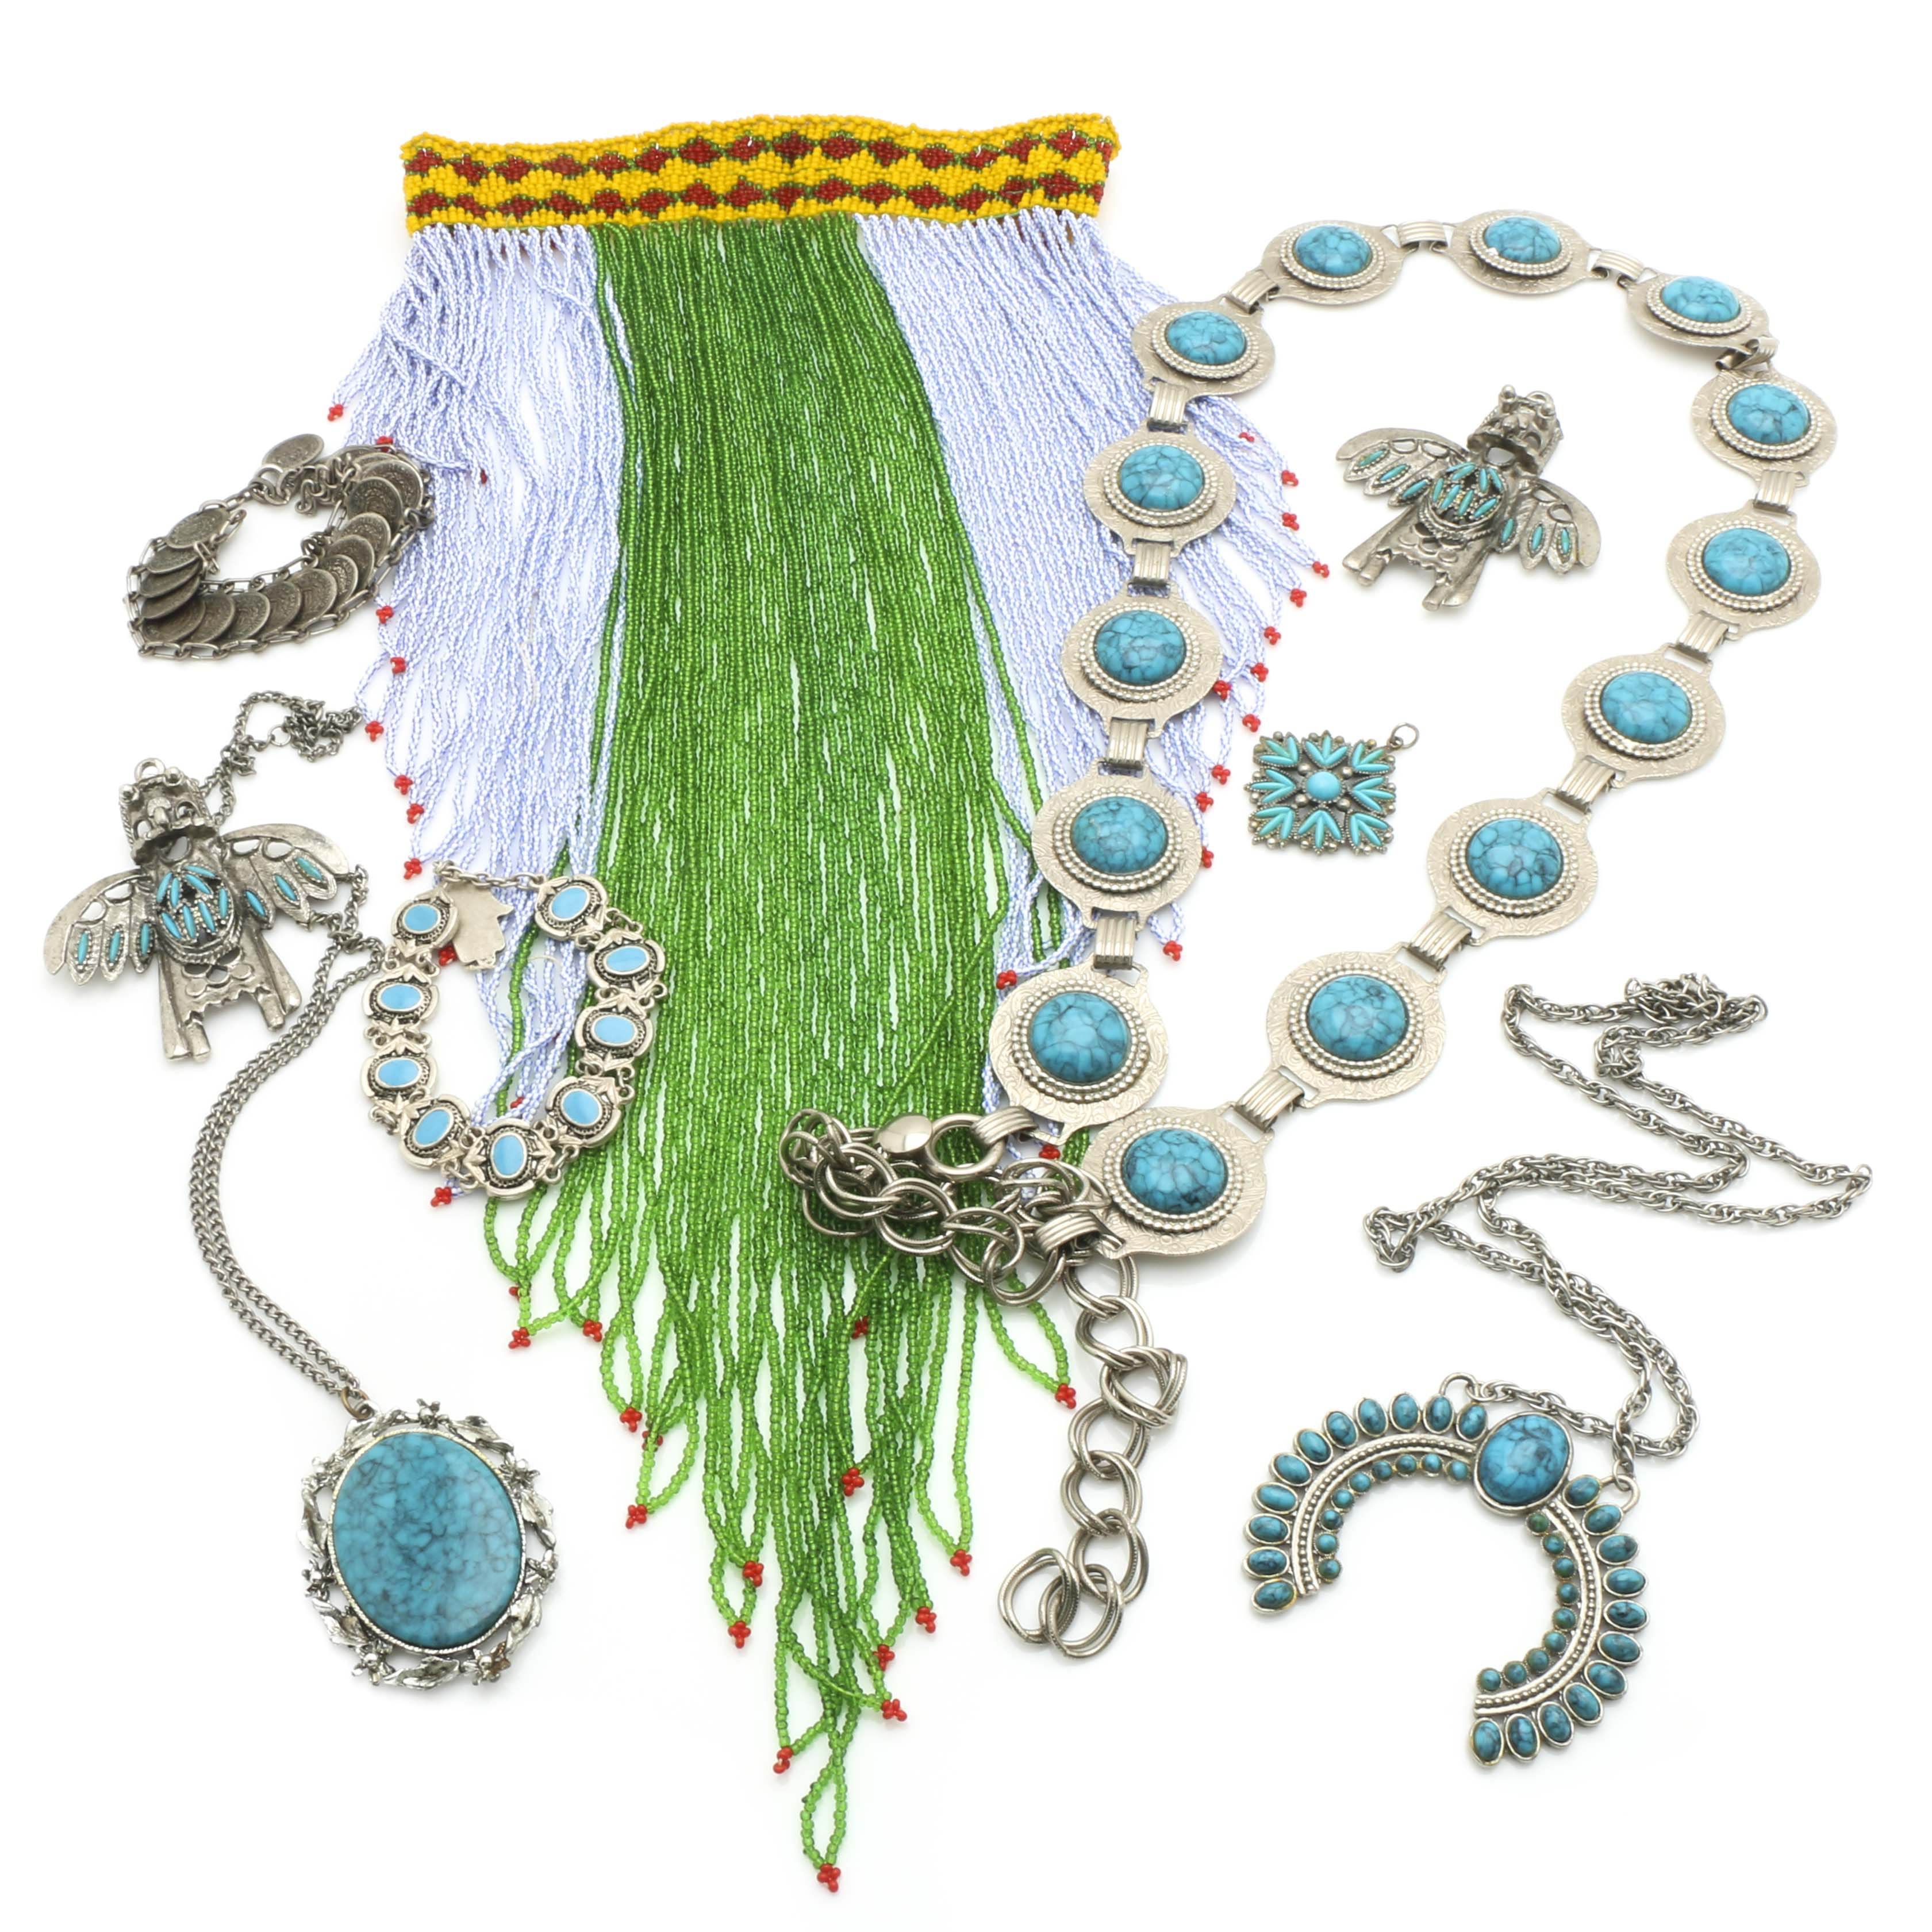 Assortment of Southwestern Style Jewelry and Accessories Featuring Imitation Turquoise